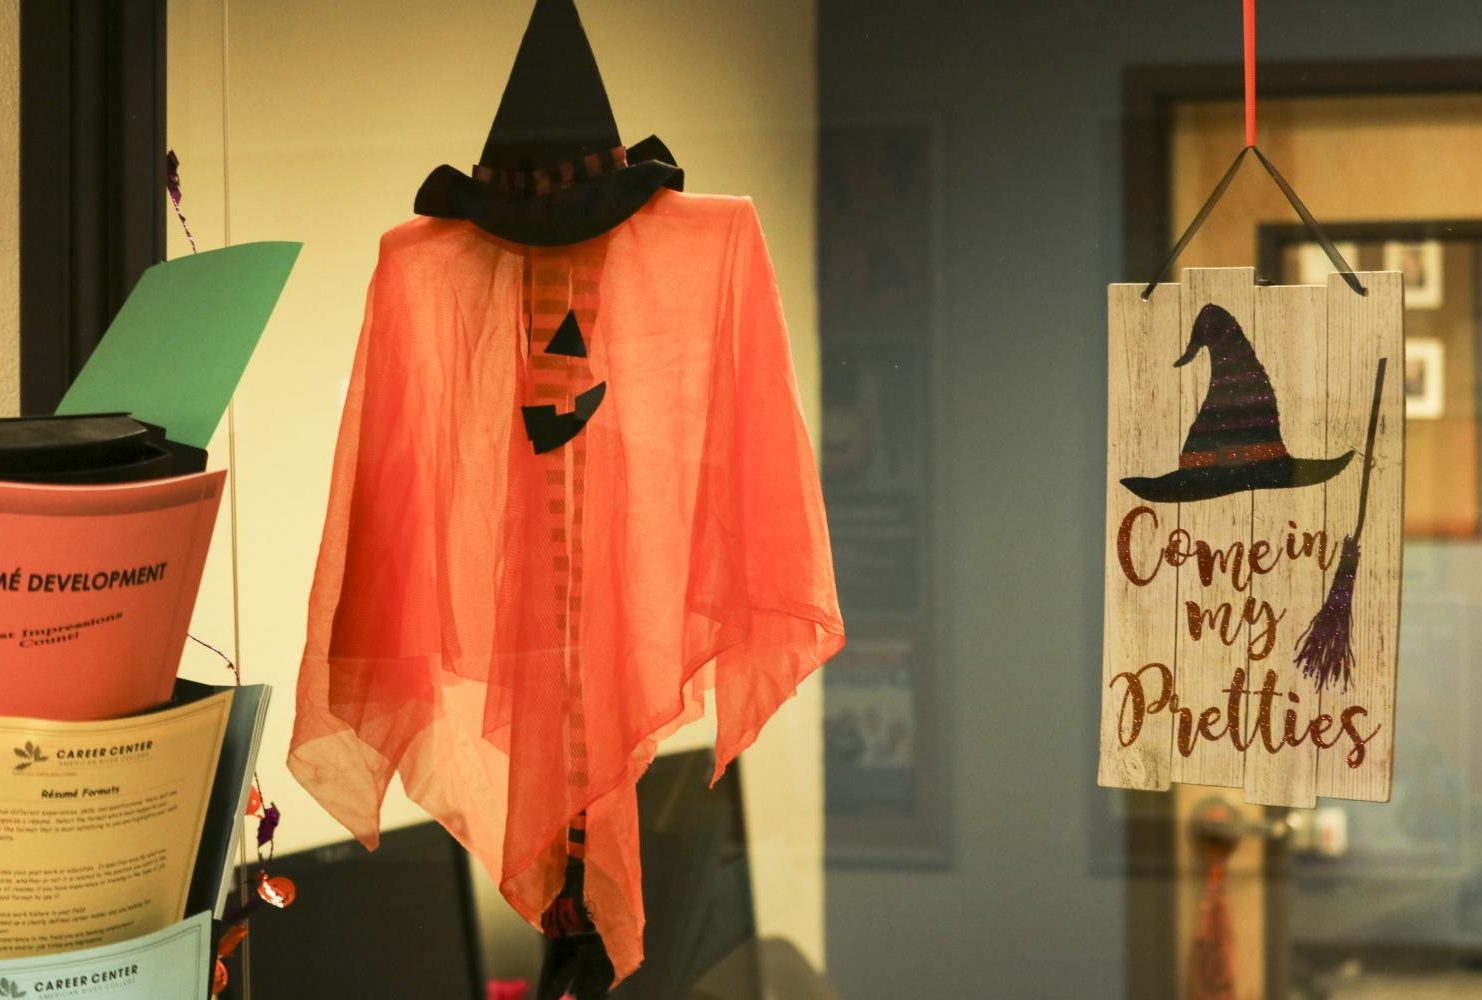 The Career Pathway Support Services hangs up witch themed decortions for the department Halloween contest. (Photo by Gabe Carlos)